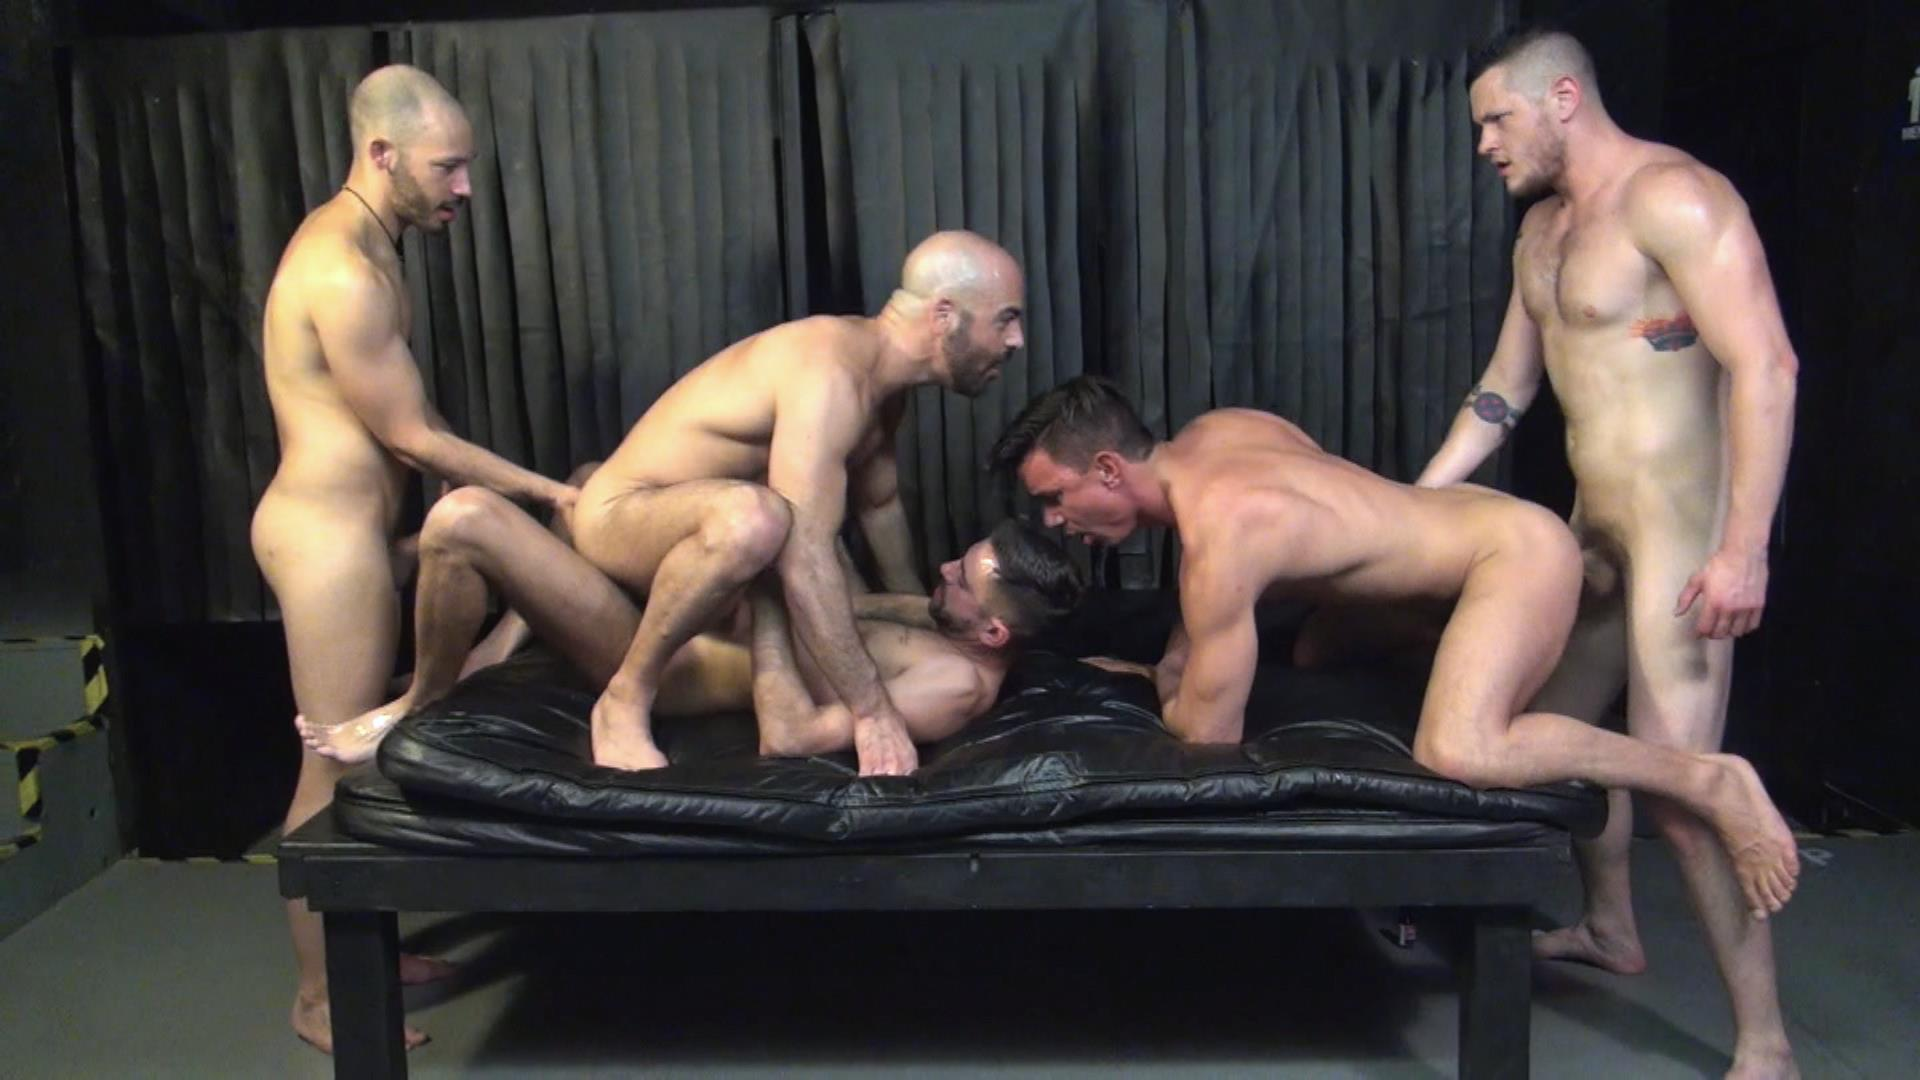 Raw Fuck Club Blue Bailey and Dylan Strokes and Adam Russo and Dean Brody and Jay Brix Bareback Orgy Amateur Gay Porn 2 Adam Russo Getting Double Penetrated At A Bareback Sex Party